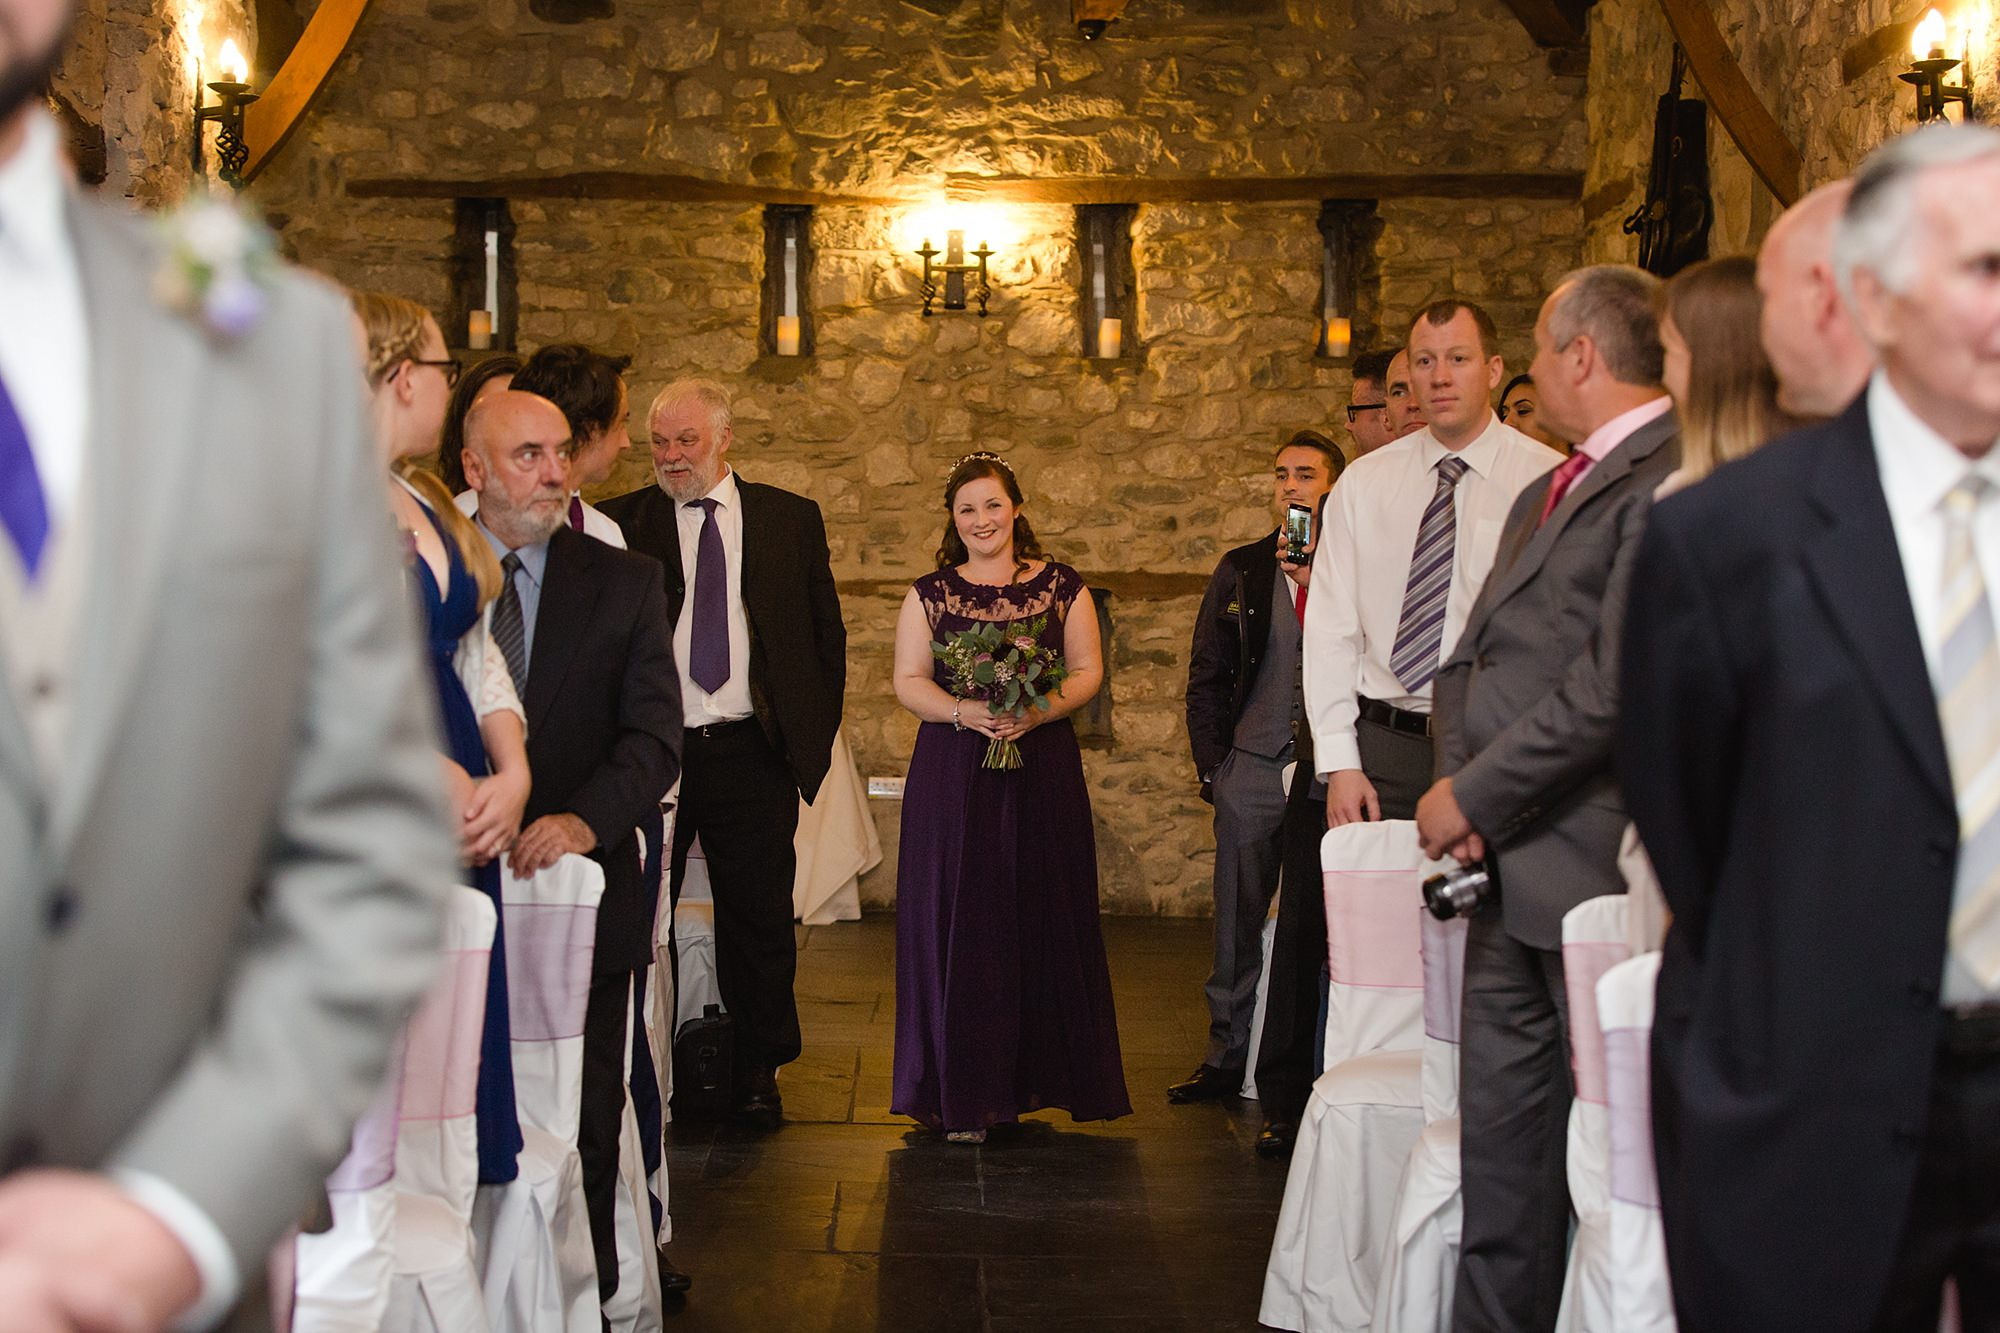 A fun wedding at Plas Isaf bridesmaid walking down aisle